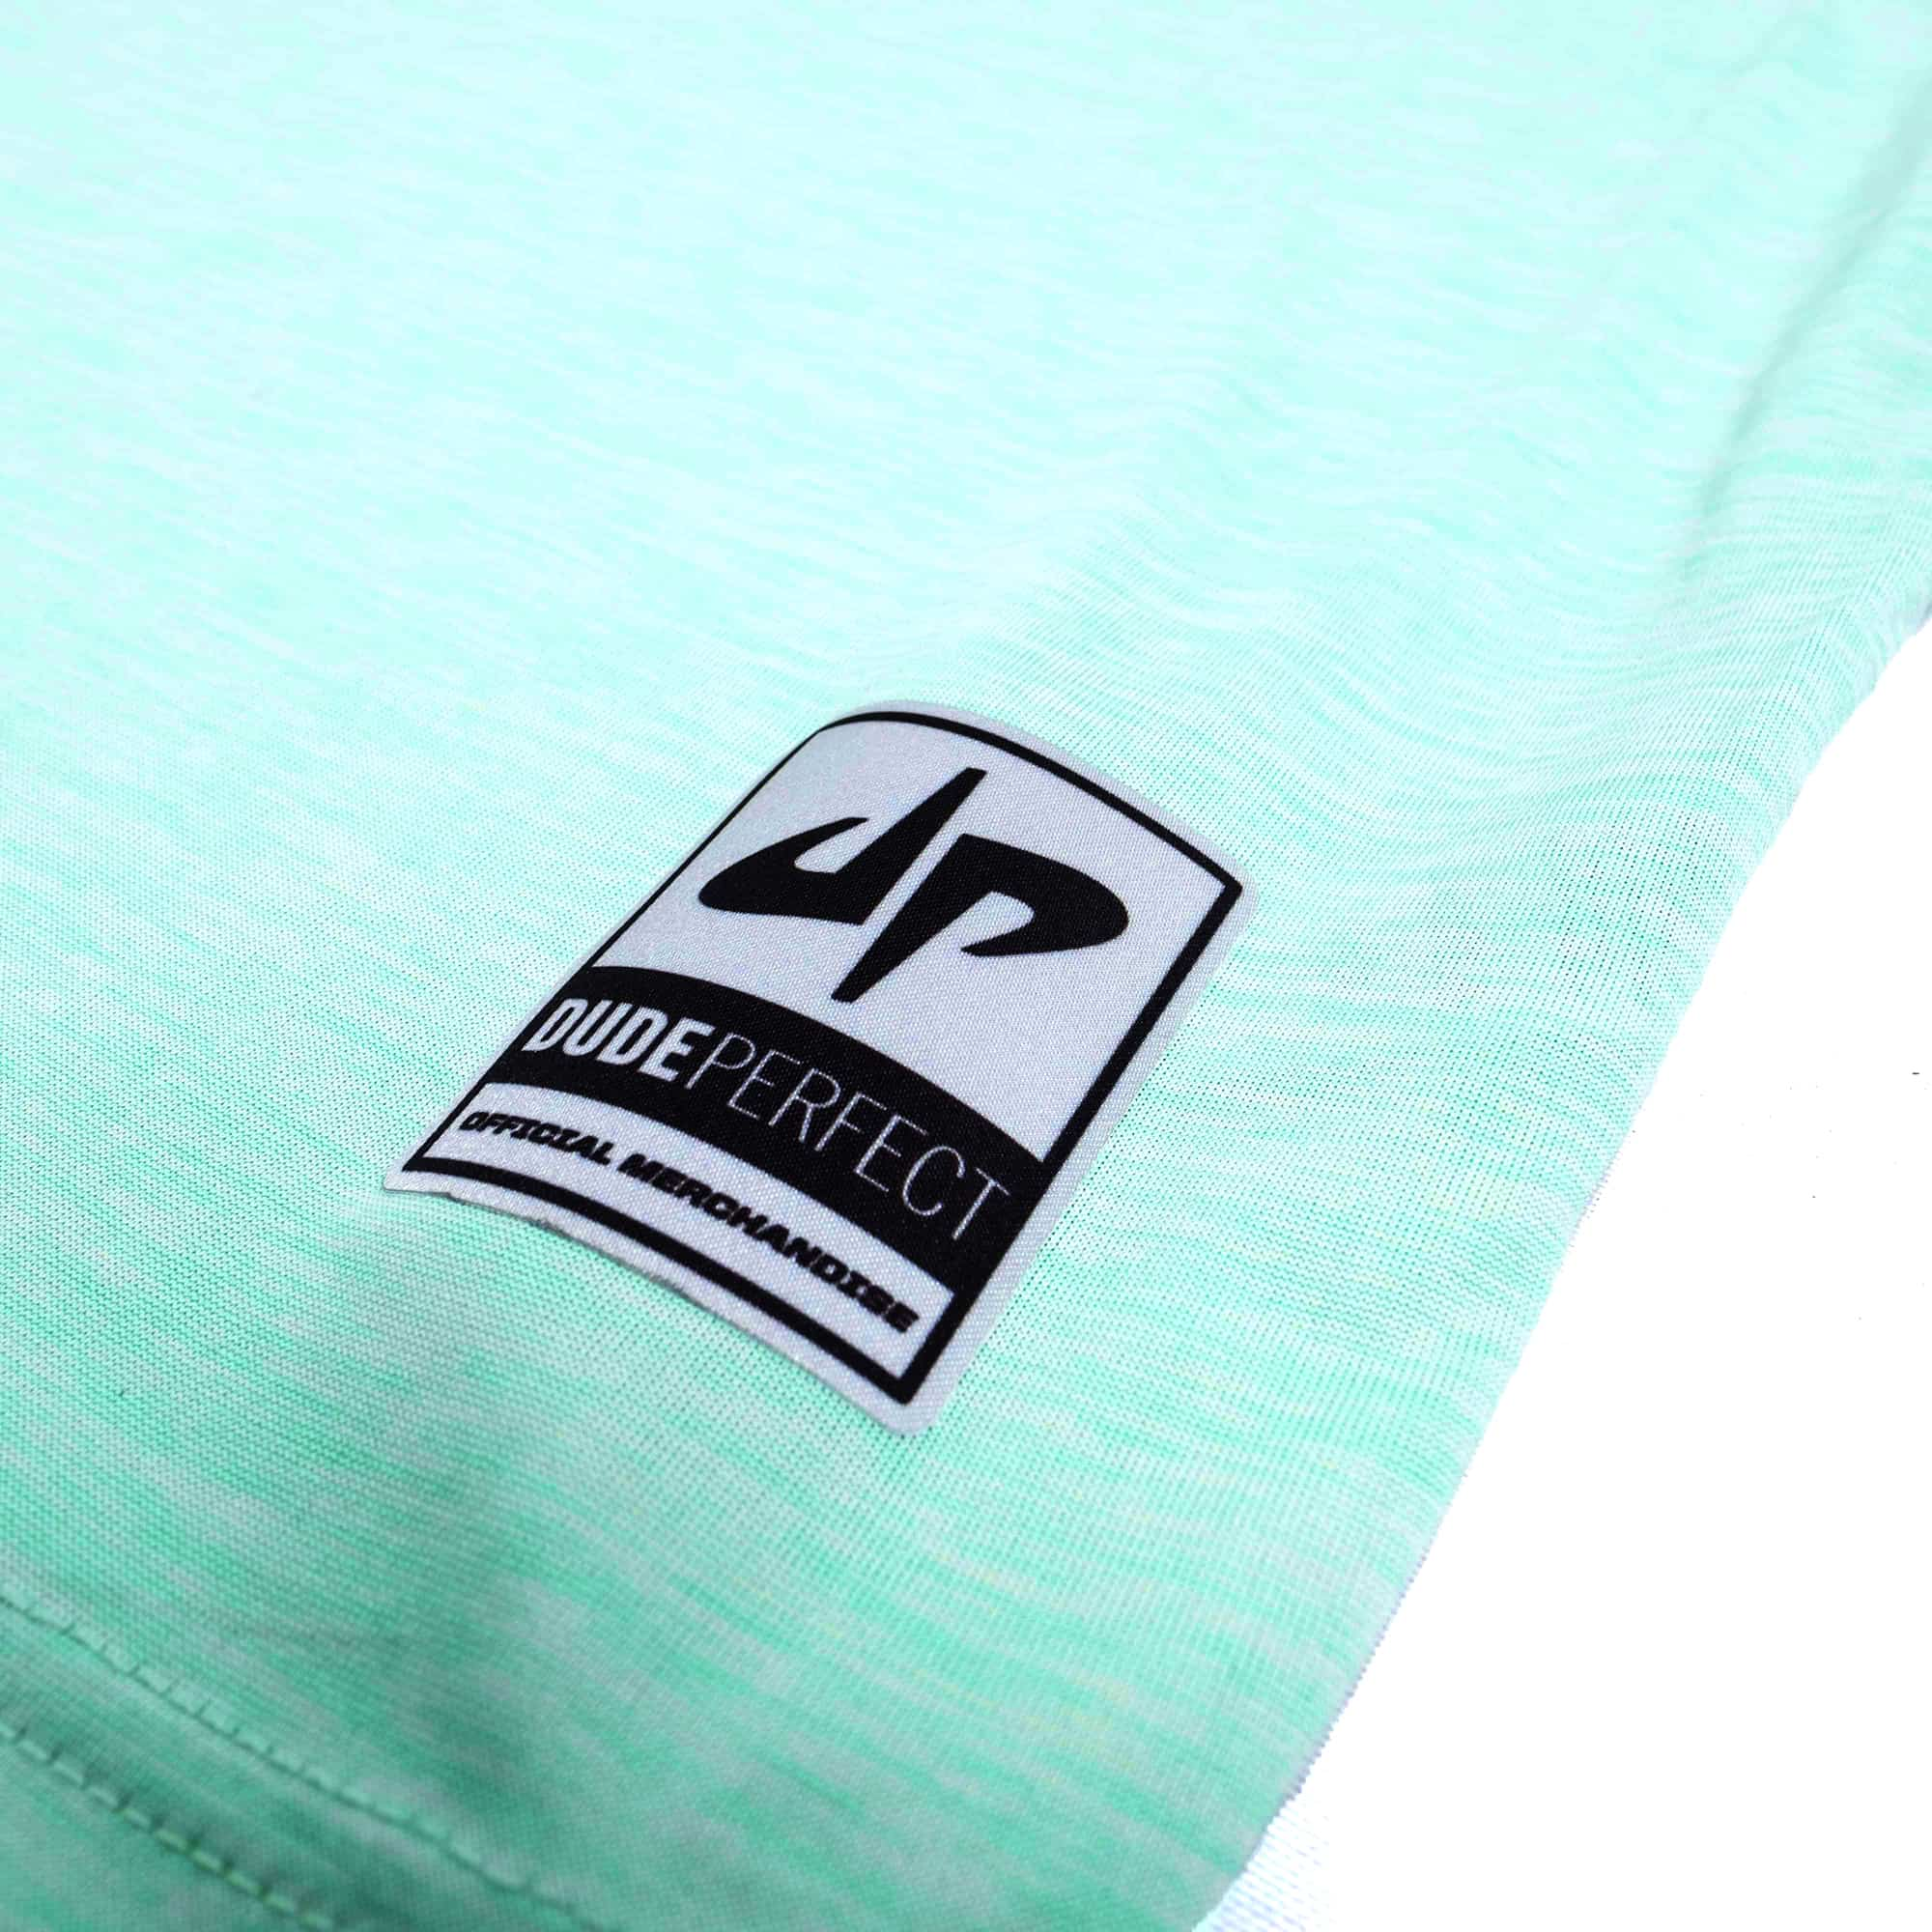 Youth Battles Combat 2 Performance Tee // Mint Heather